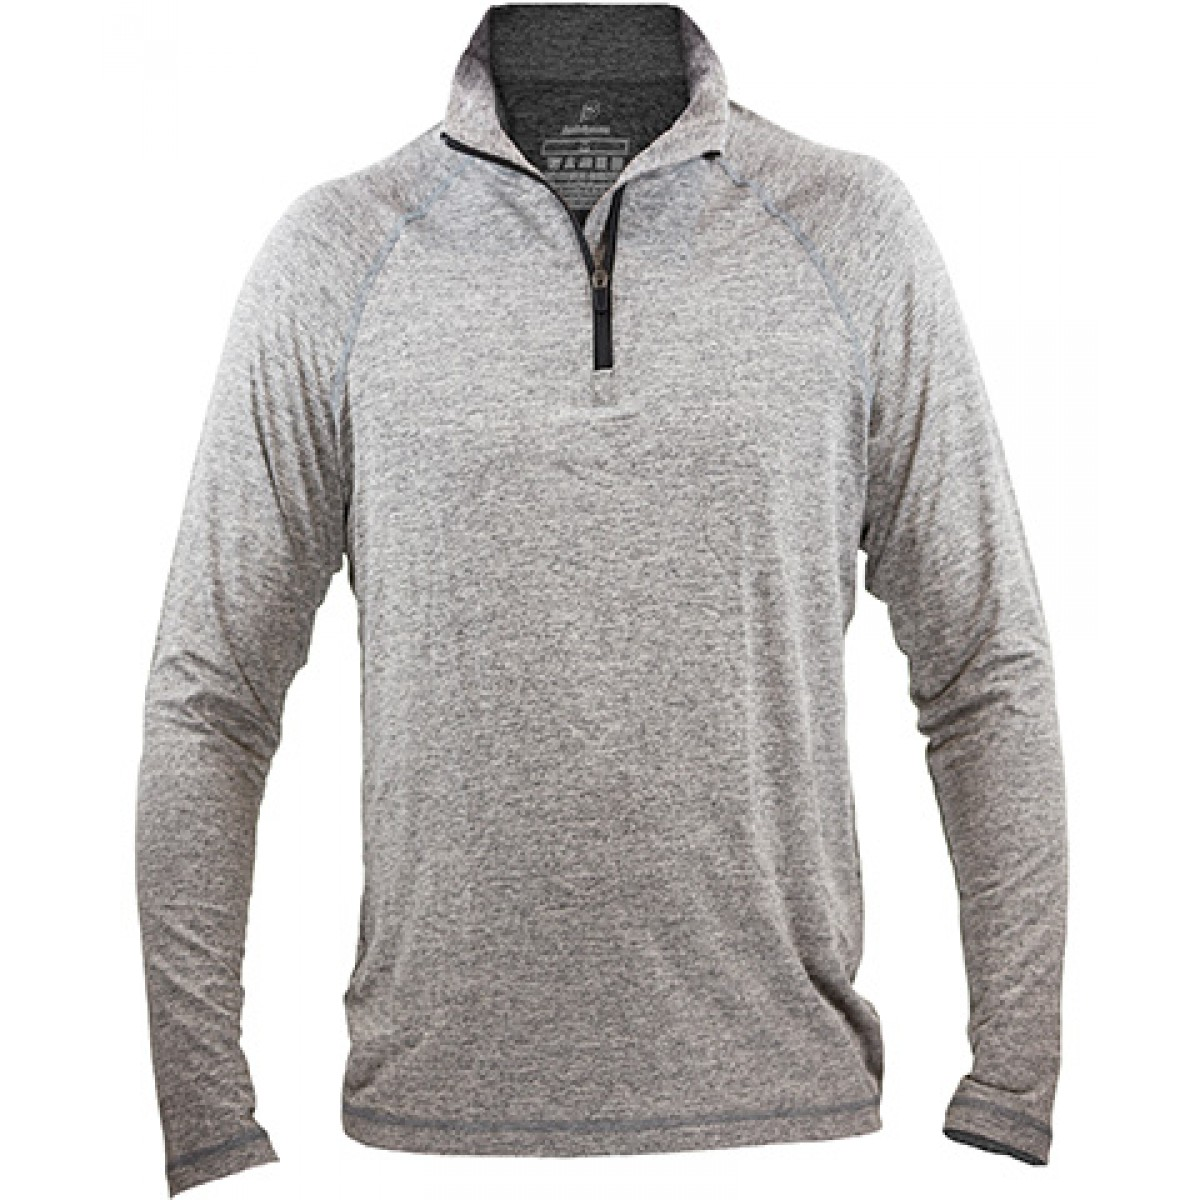 Fine Designs Blend 1/4-Zip Pullover-Gray -L